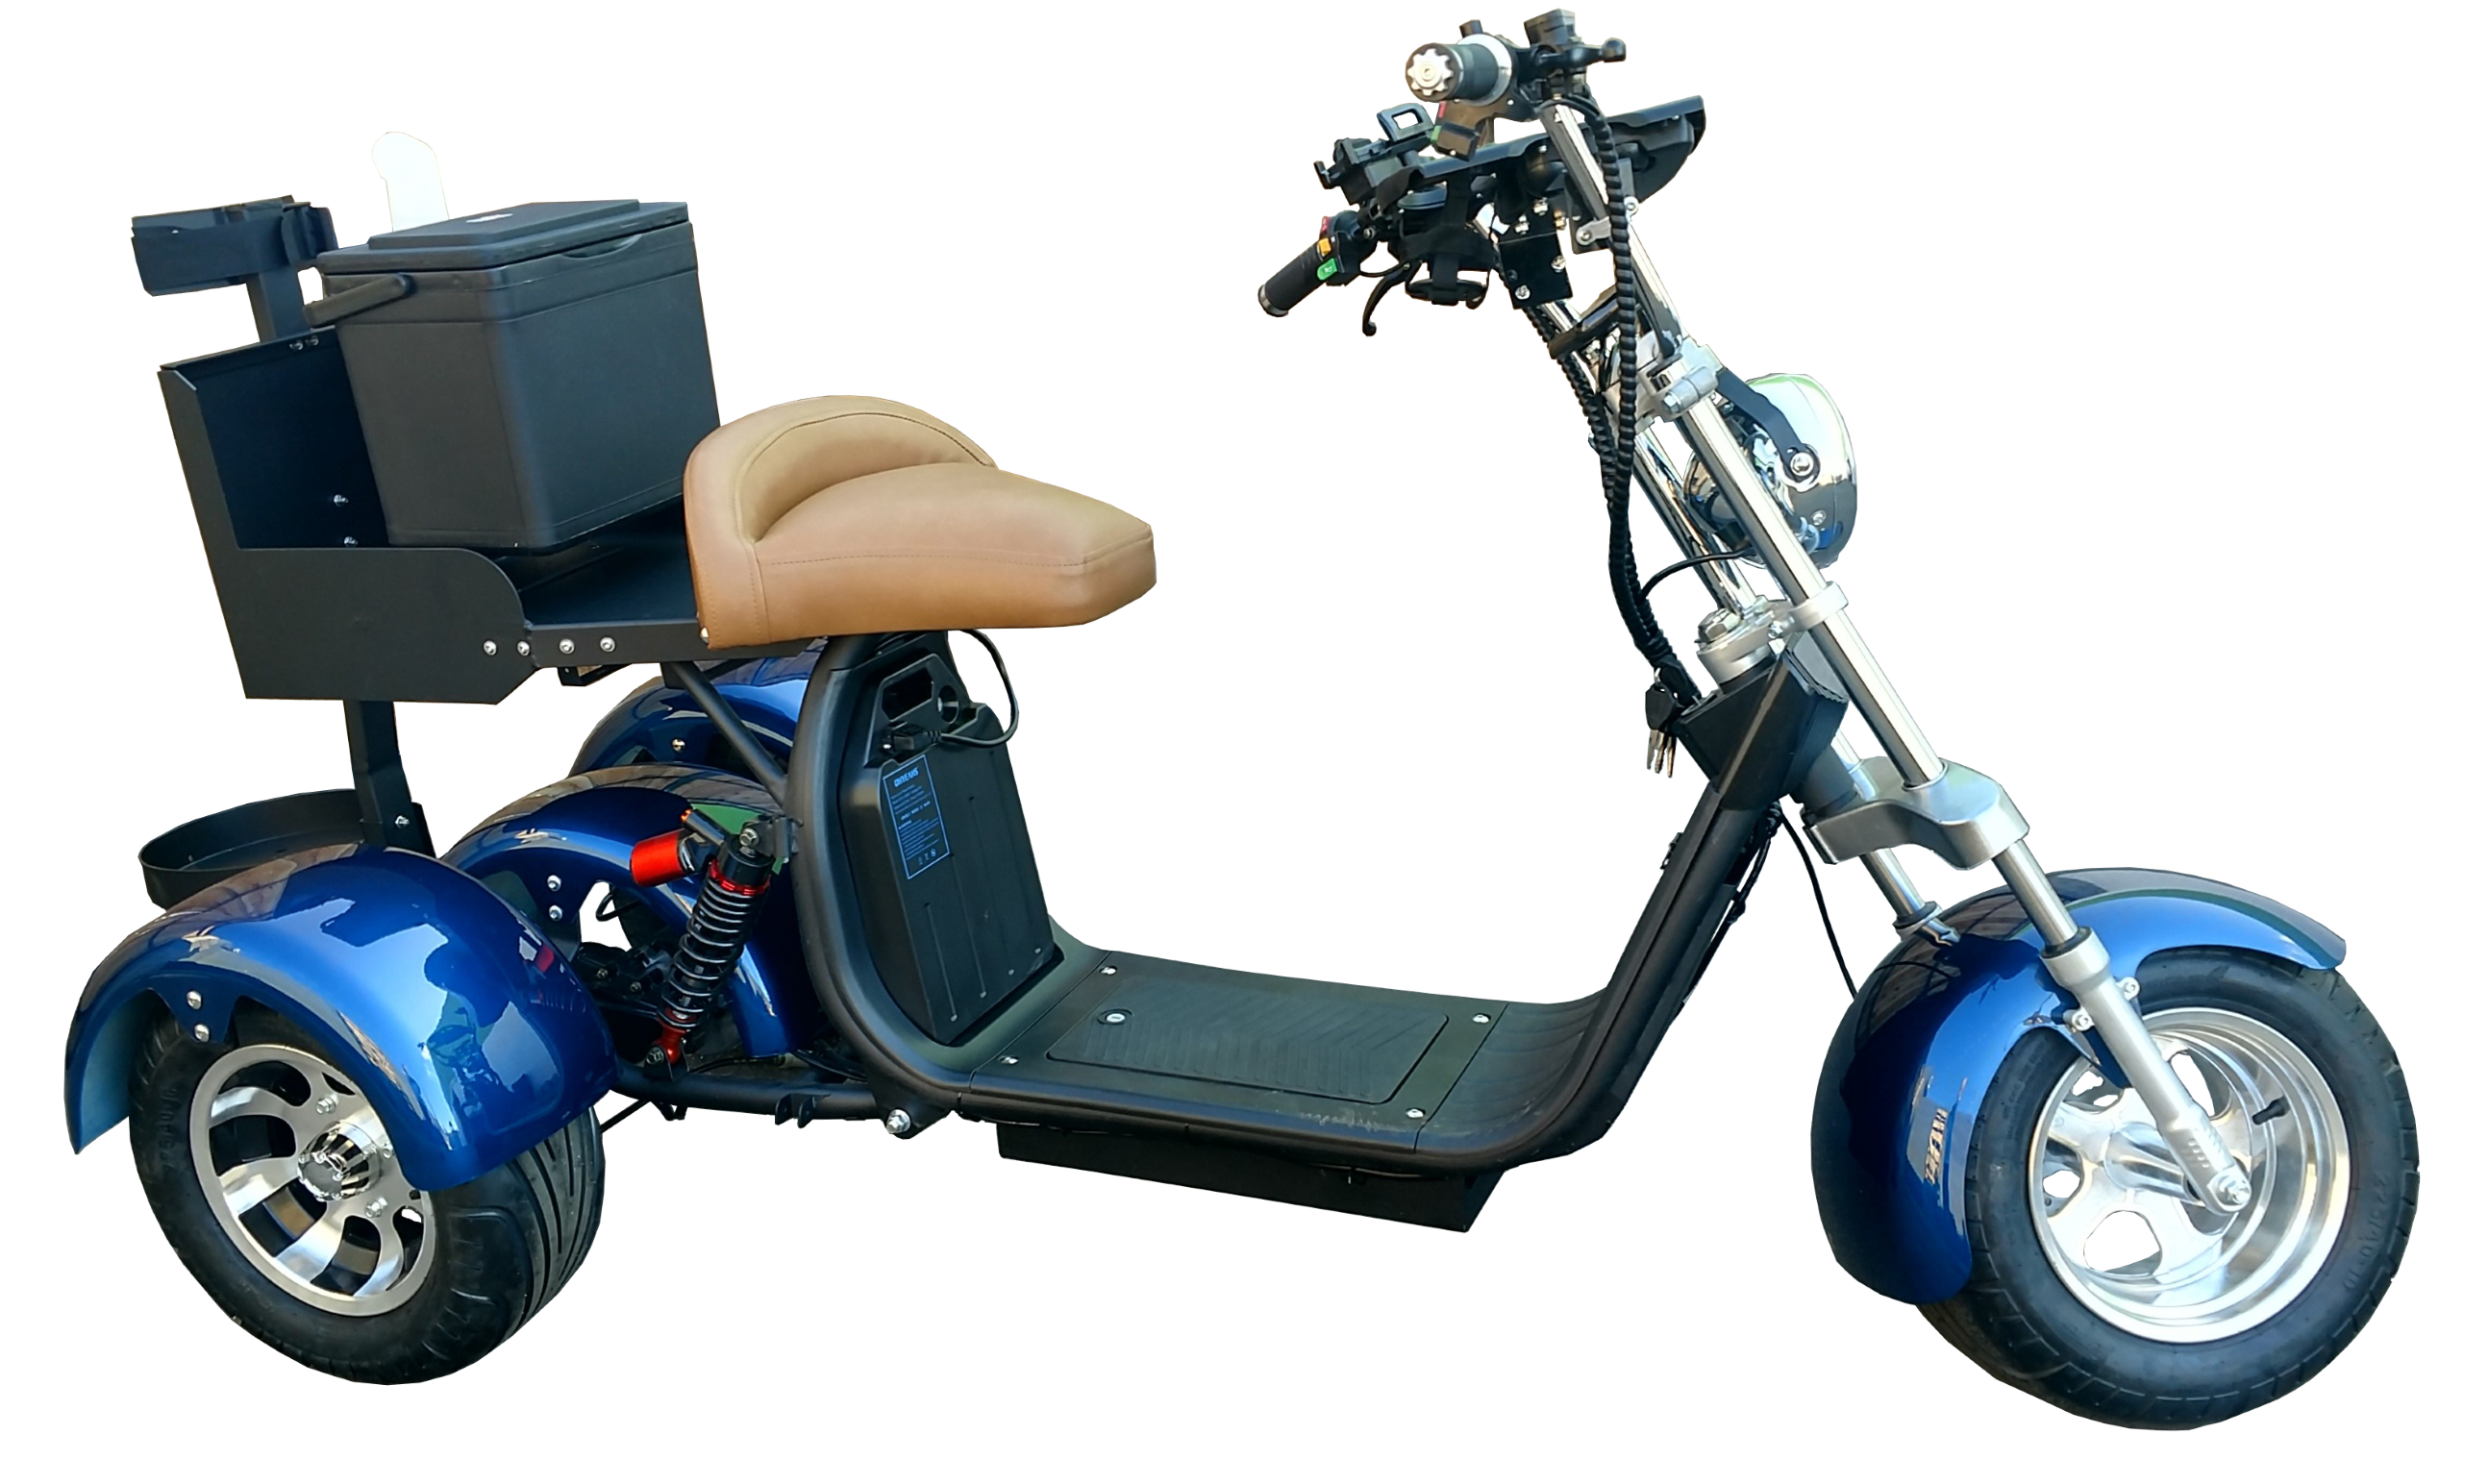 2020 Rebel Trike Blue